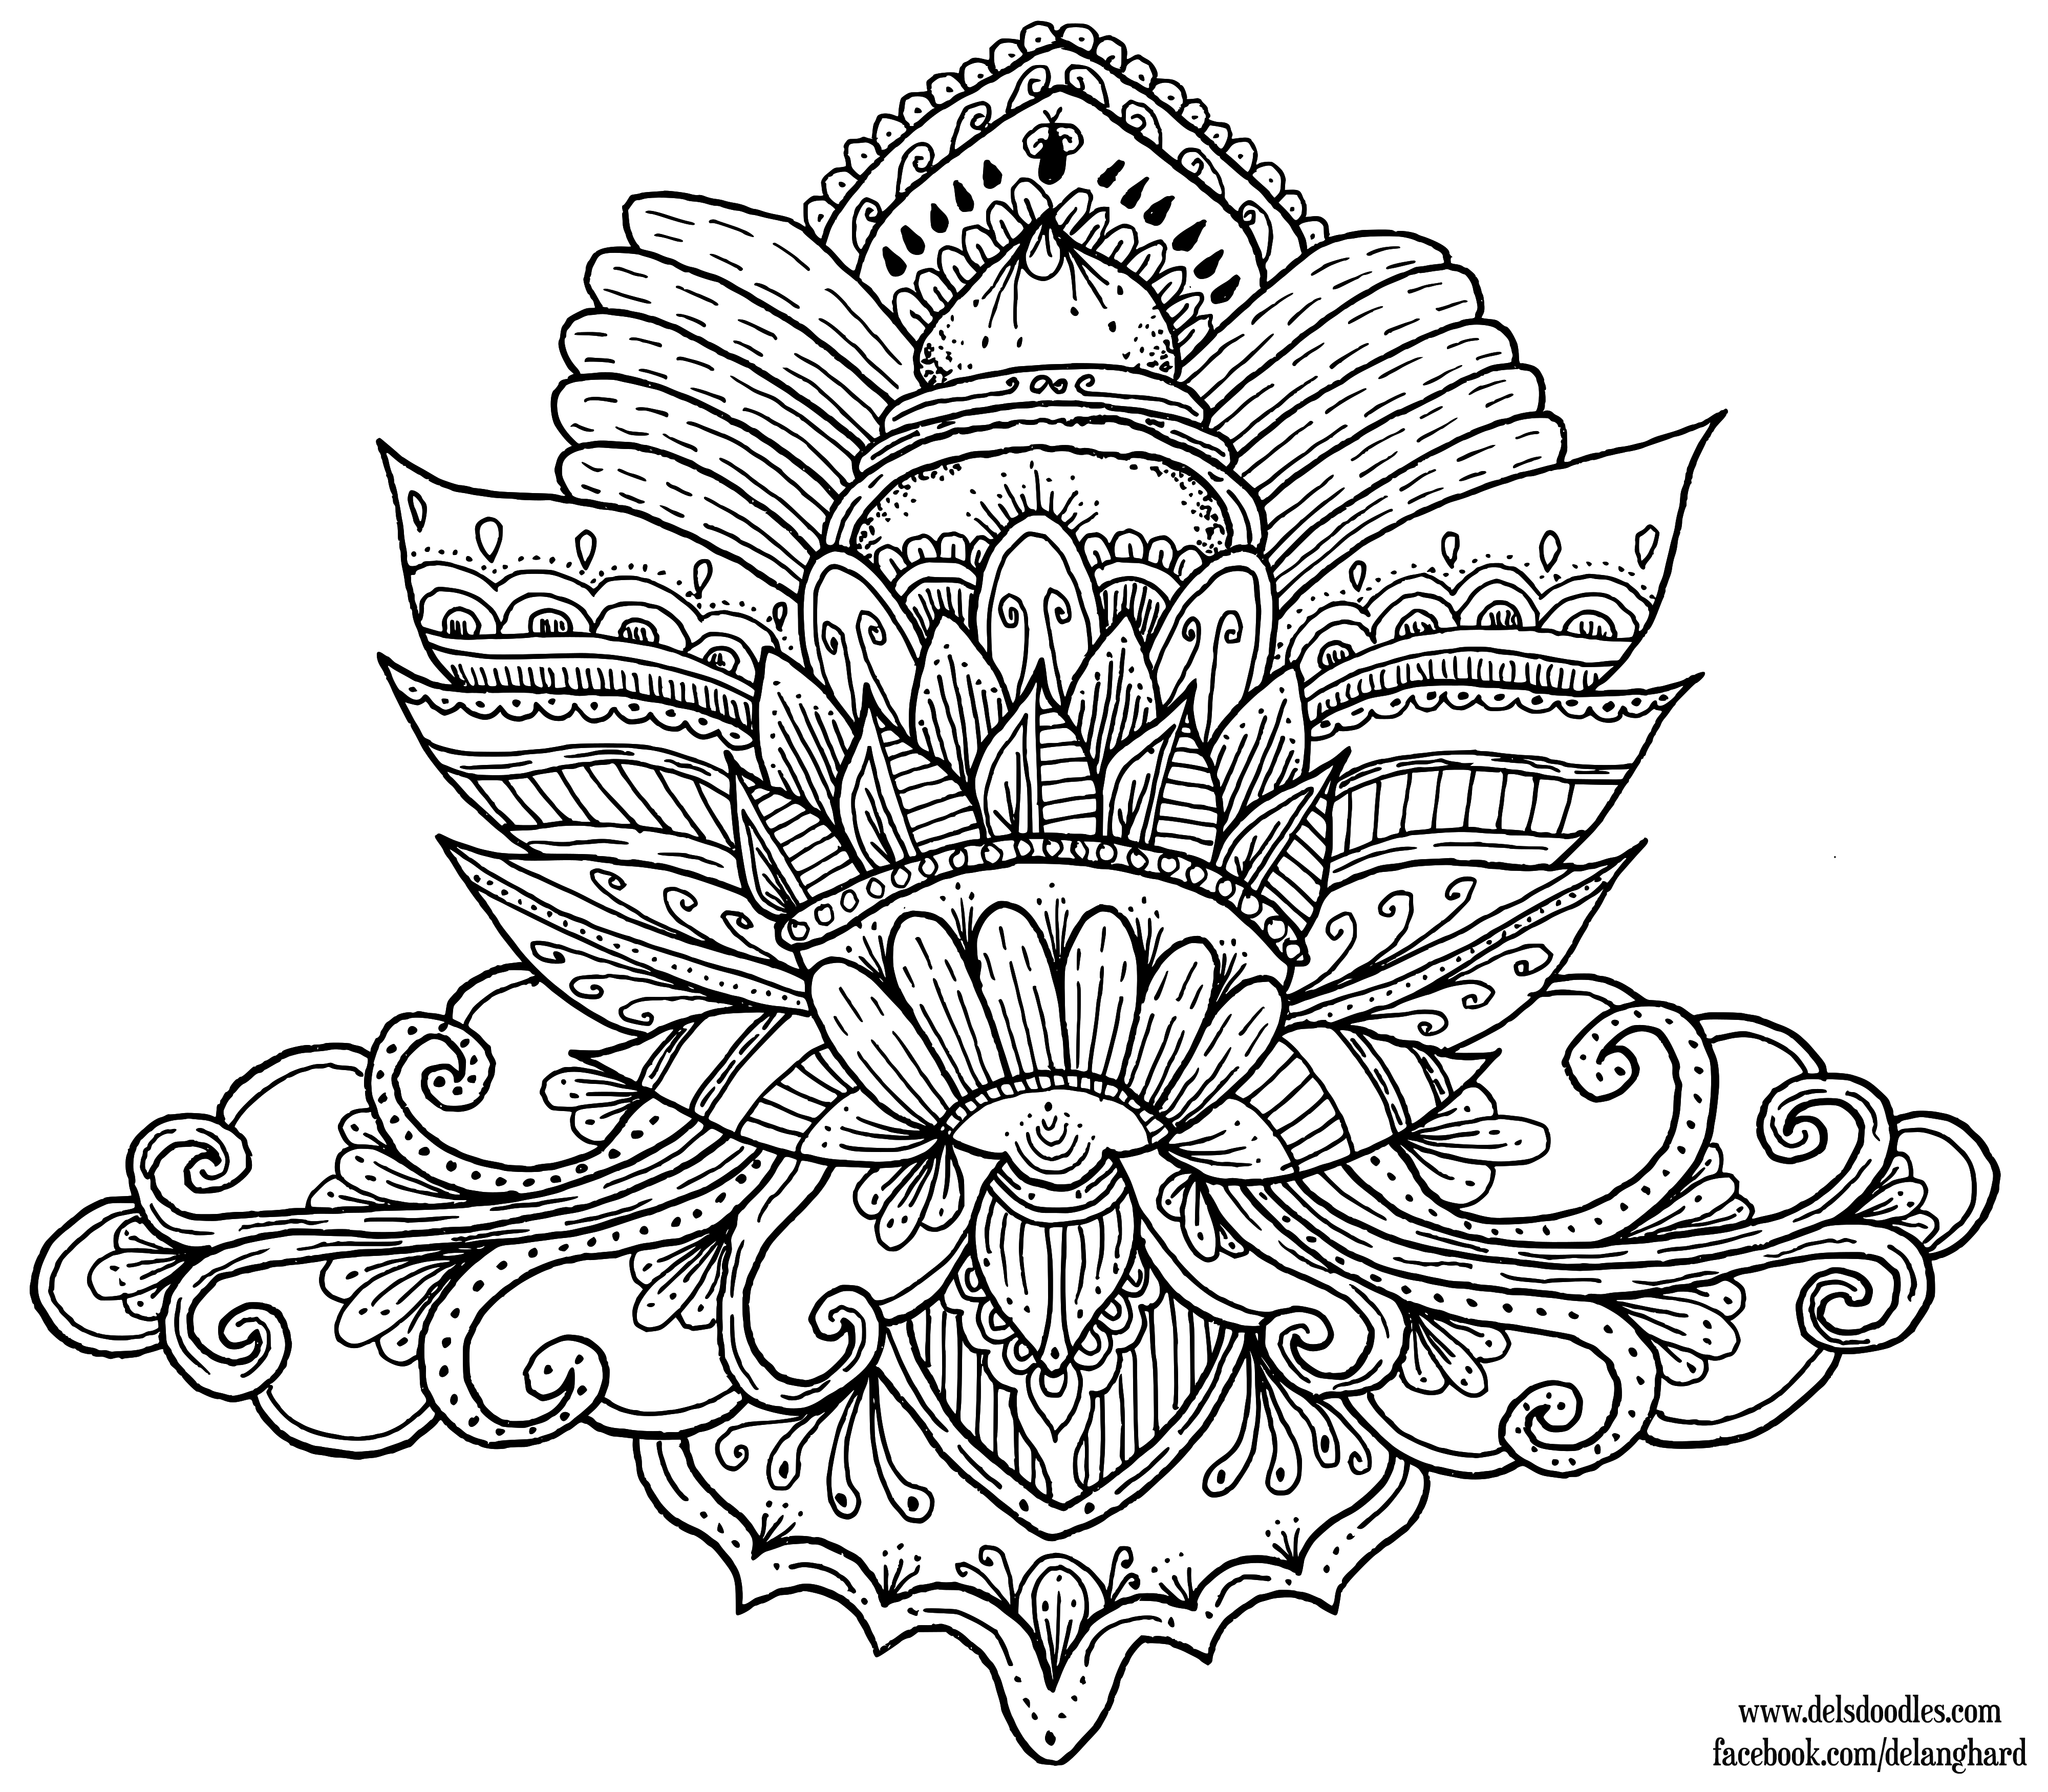 Lotus Colouring Page By WelshPixie On DeviantArt